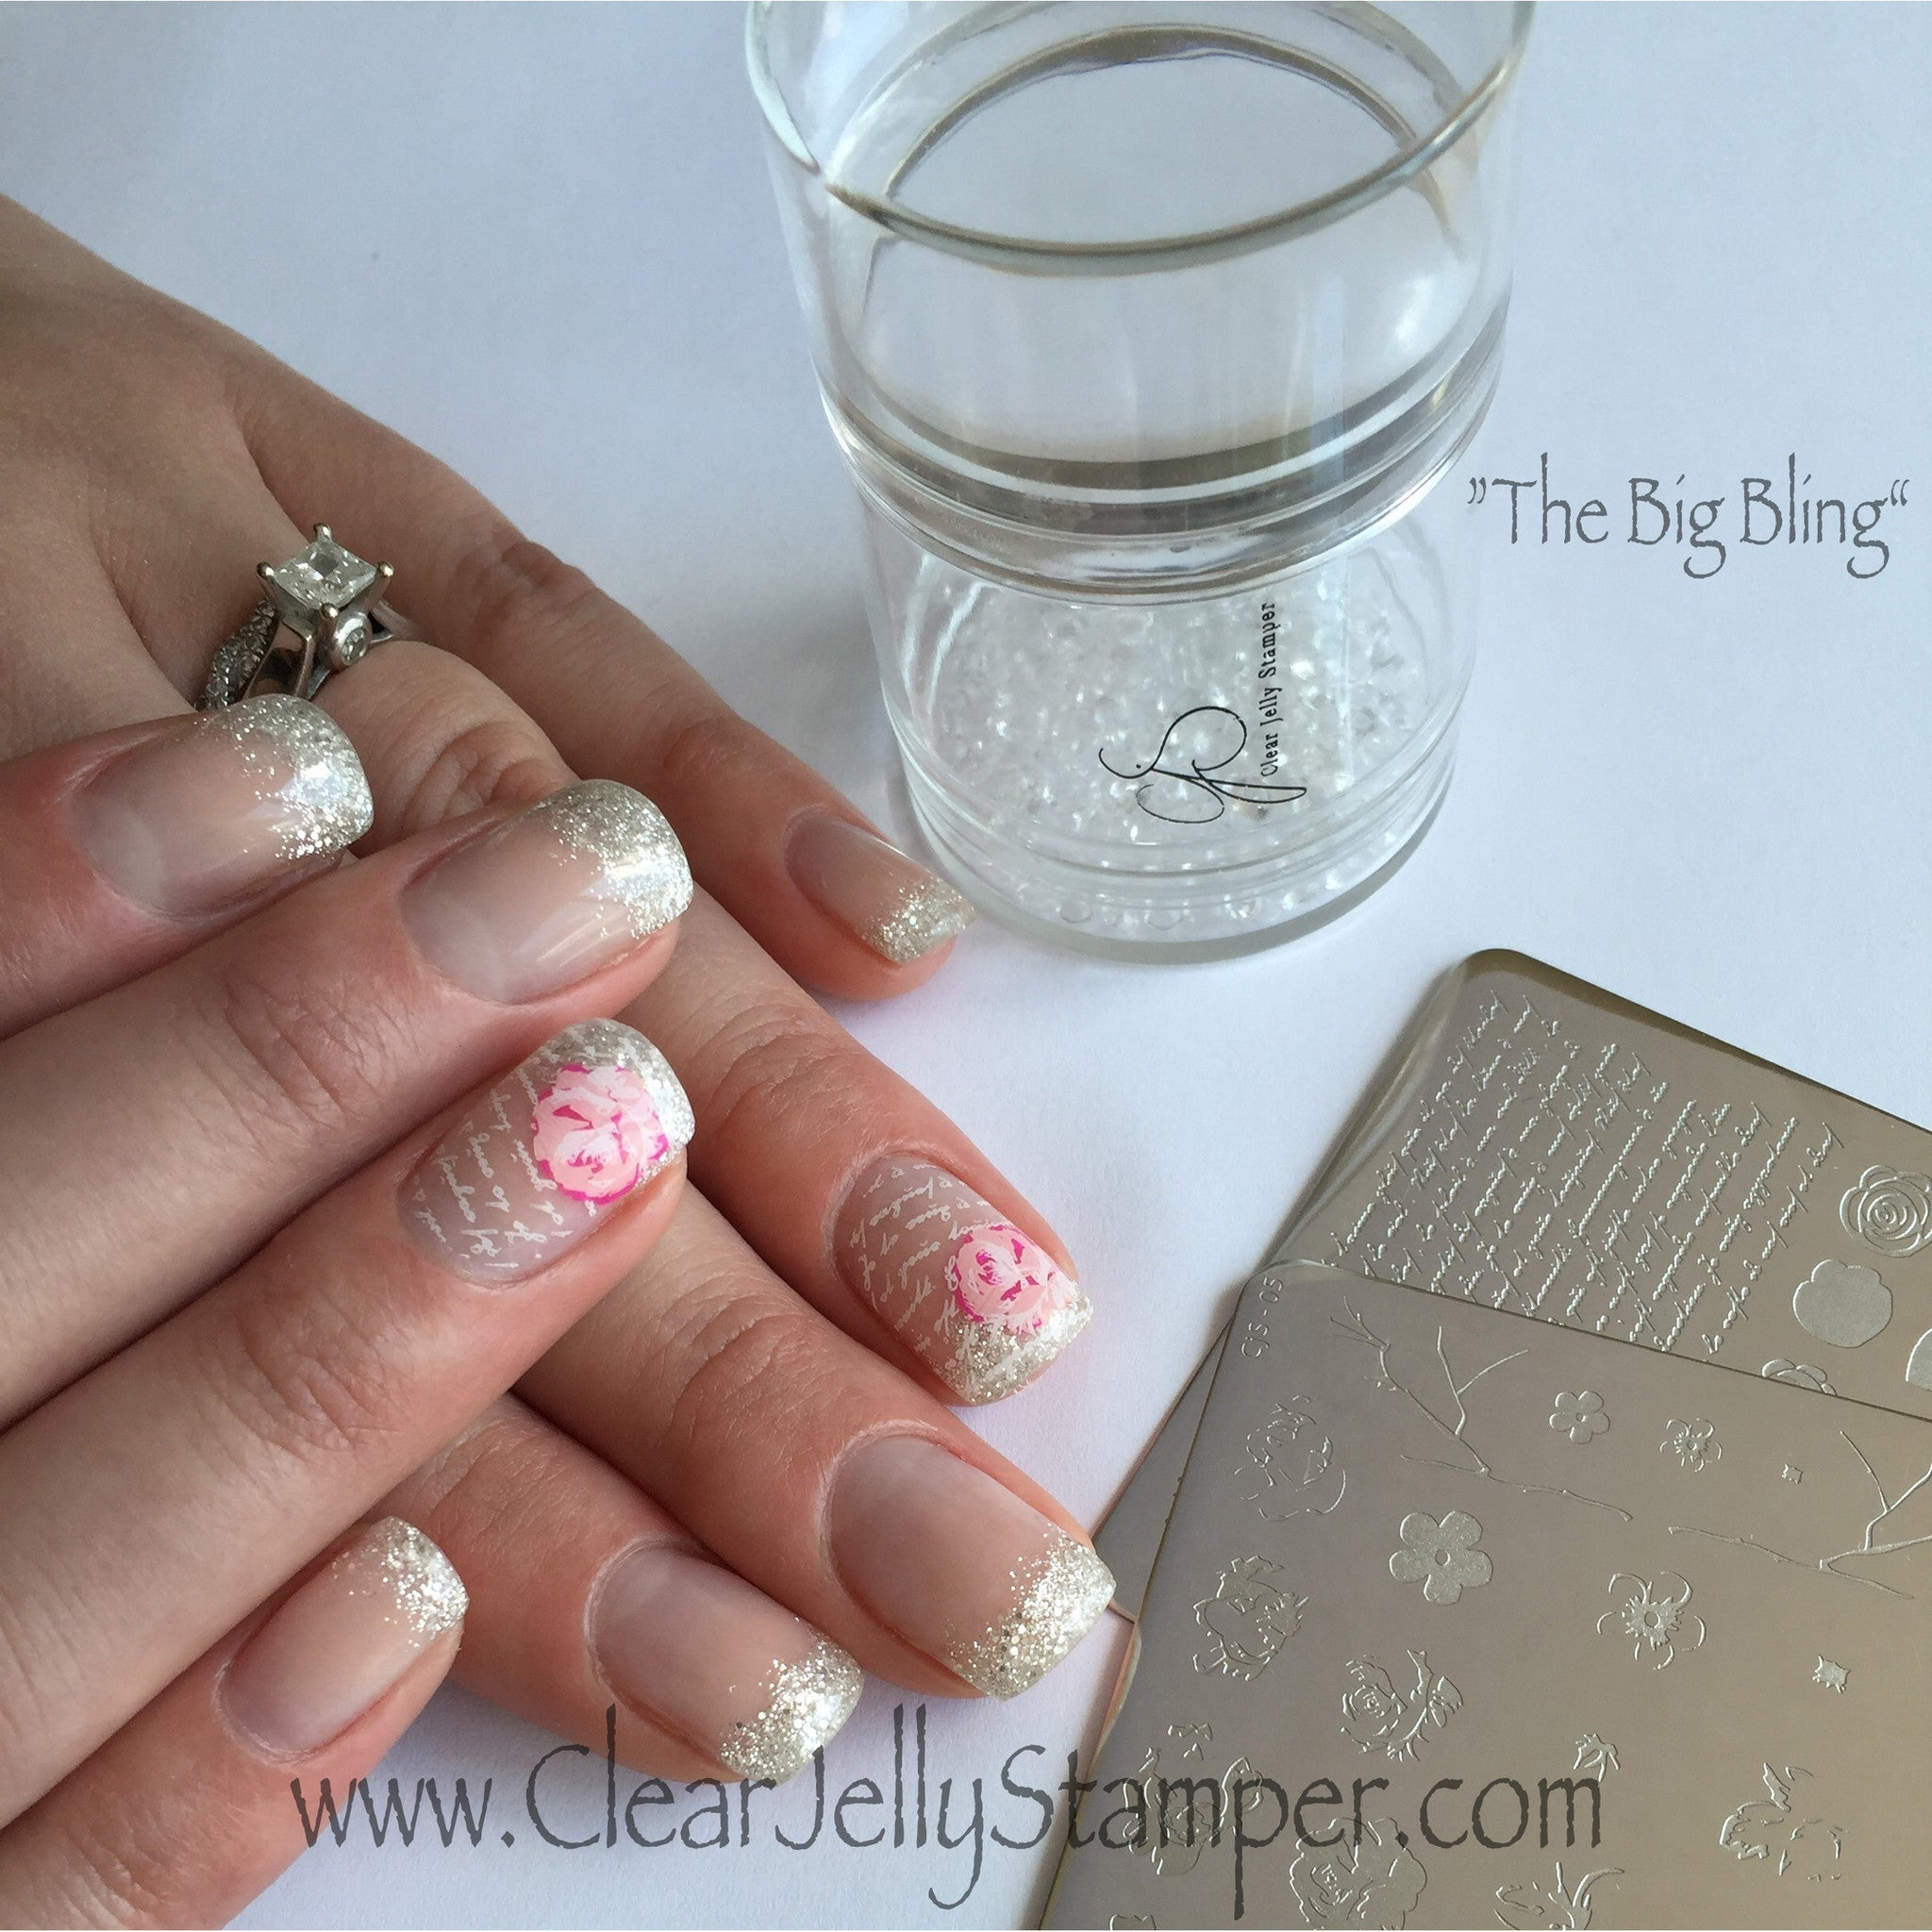 The Big Bling XL Stamper – Clear Jelly Stamper